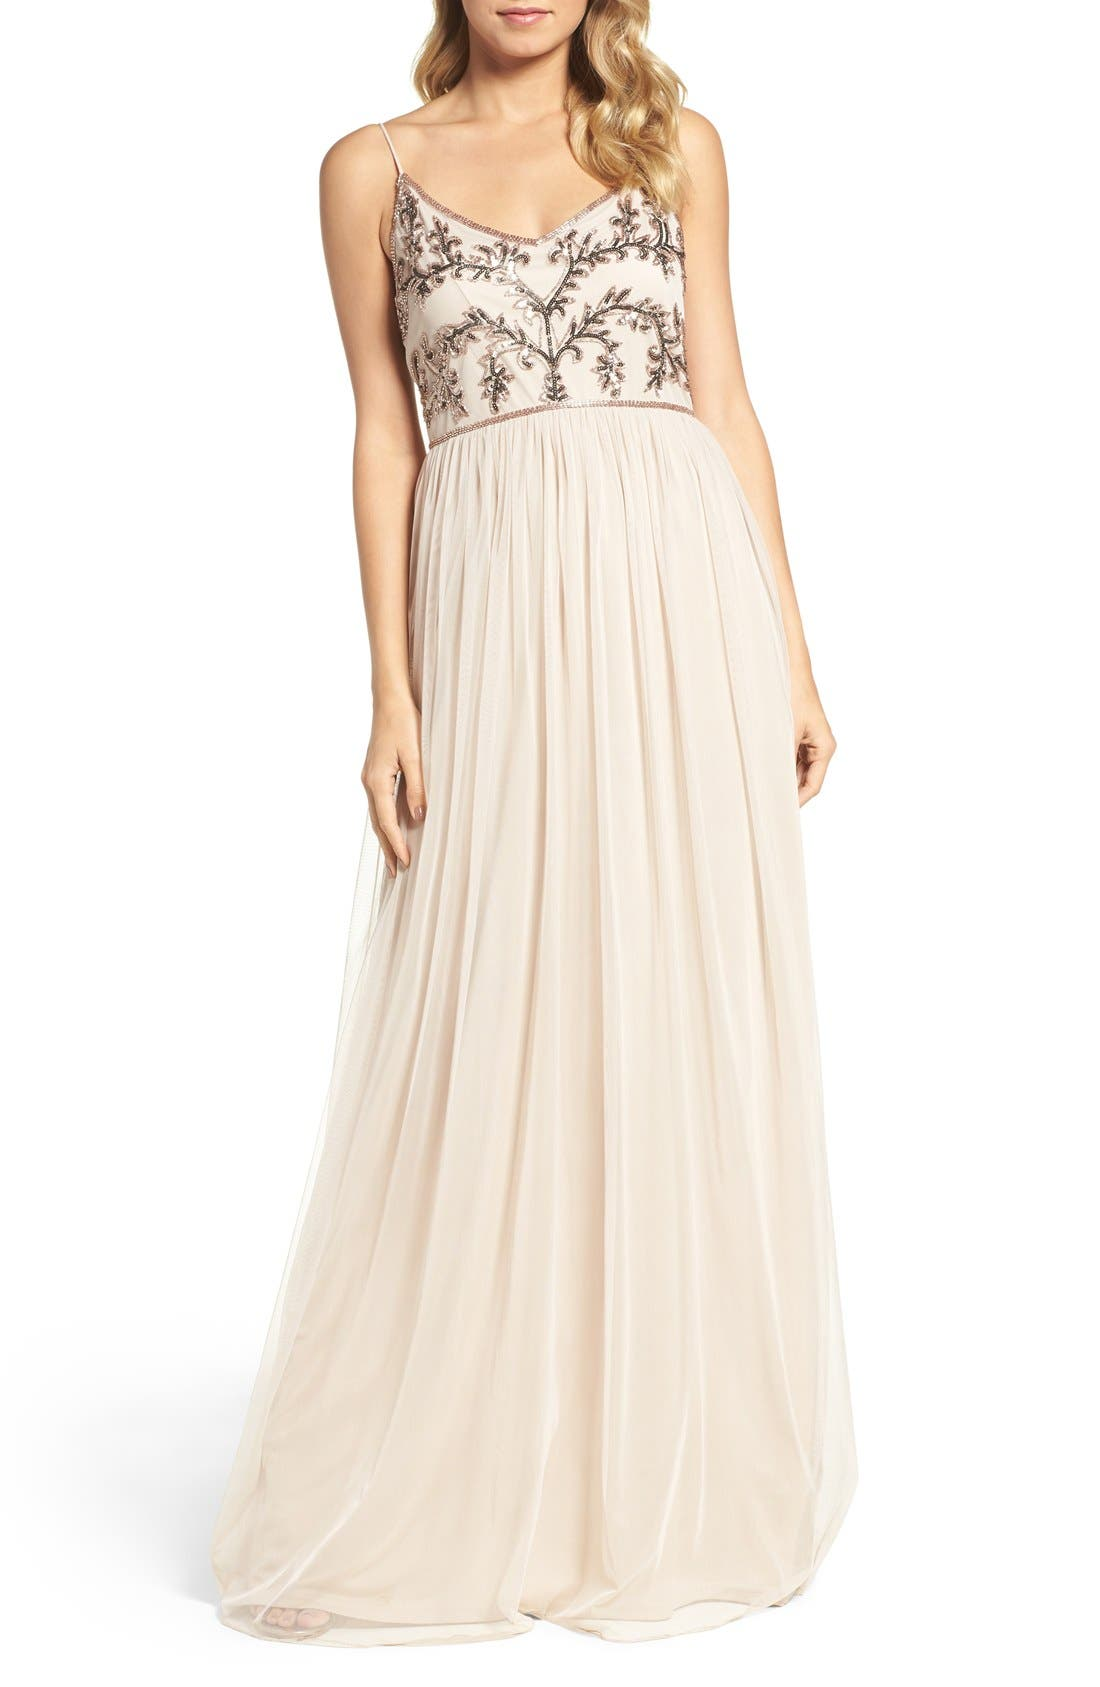 Main Image - Adrianna Papell Spaghetti Strap Embroidered Bodice Gown